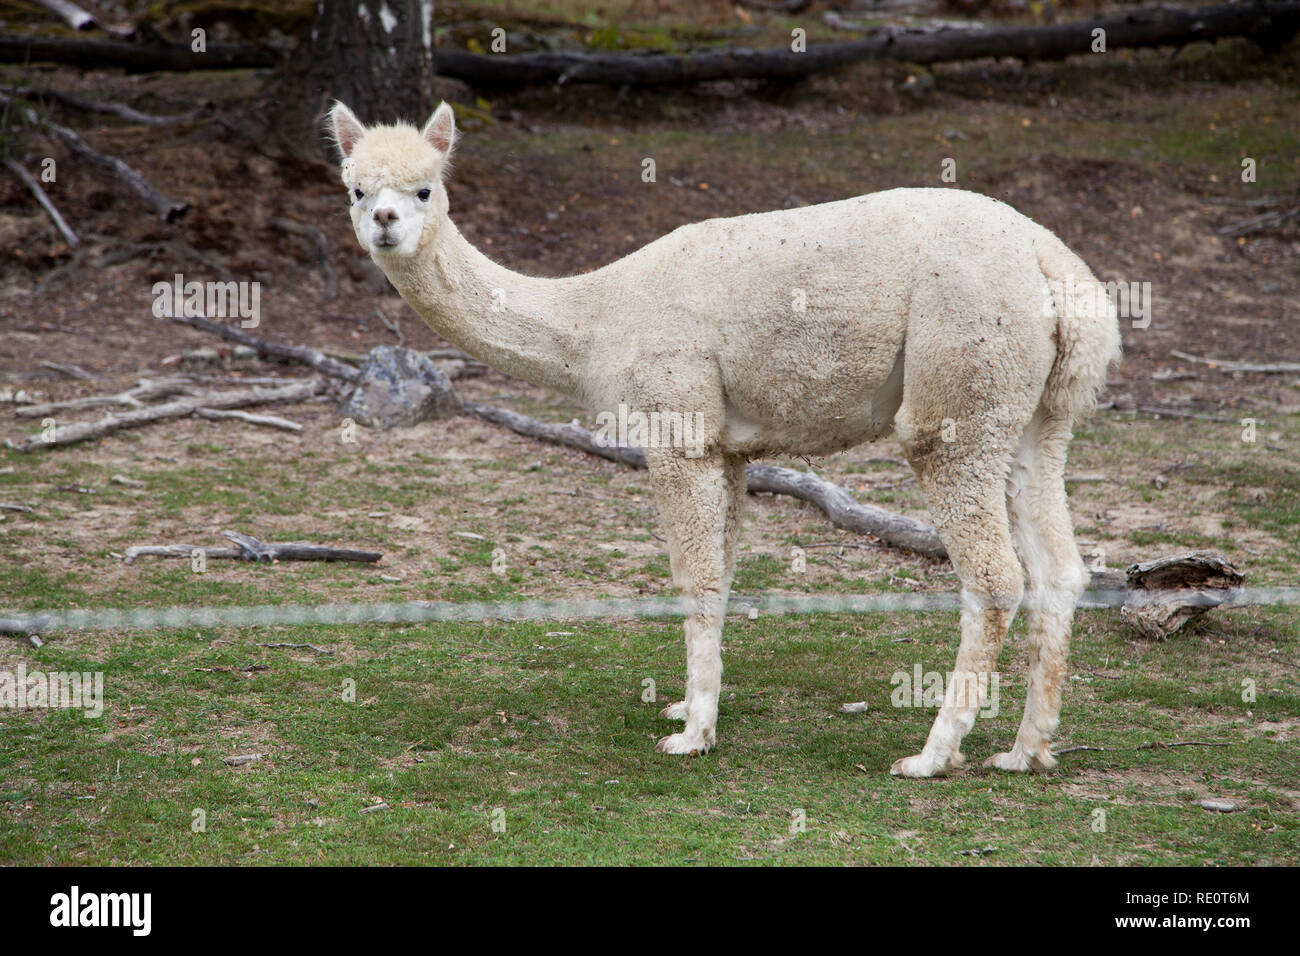 ALPACA is a species of South American camelid and new species of animals at some Swedish farms Stock Photo